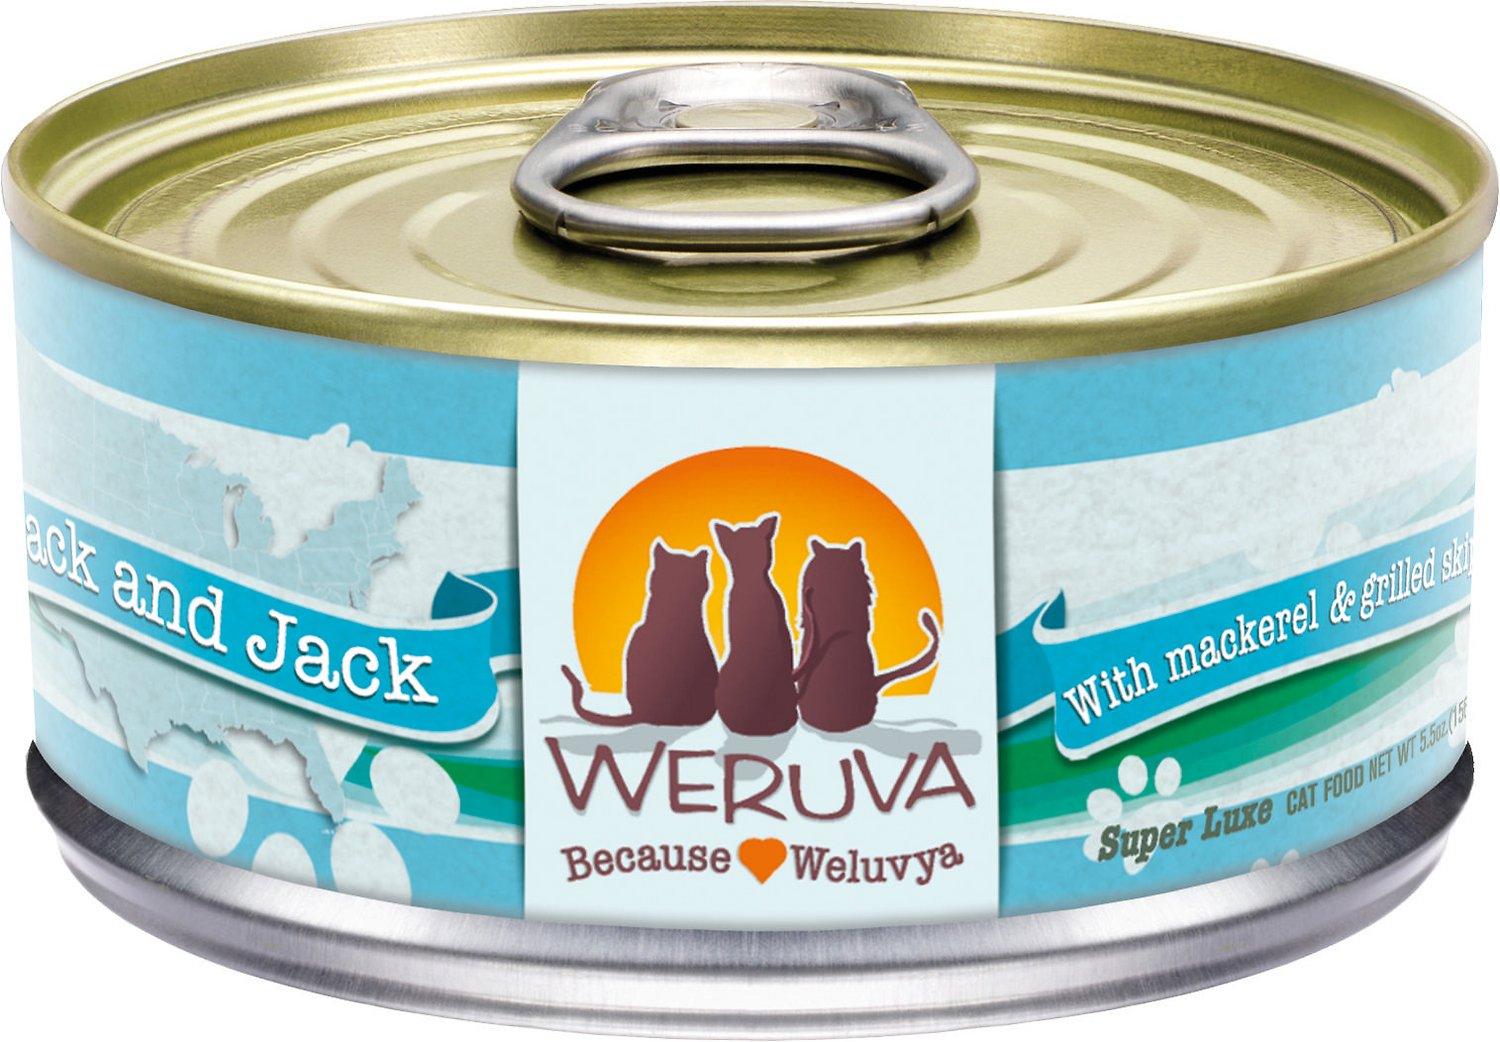 Weruva Cat Classic Mack and Jack with Mackerel & Grilled Skipjack Grain-Free Wet Cat Food, 5.5-oz